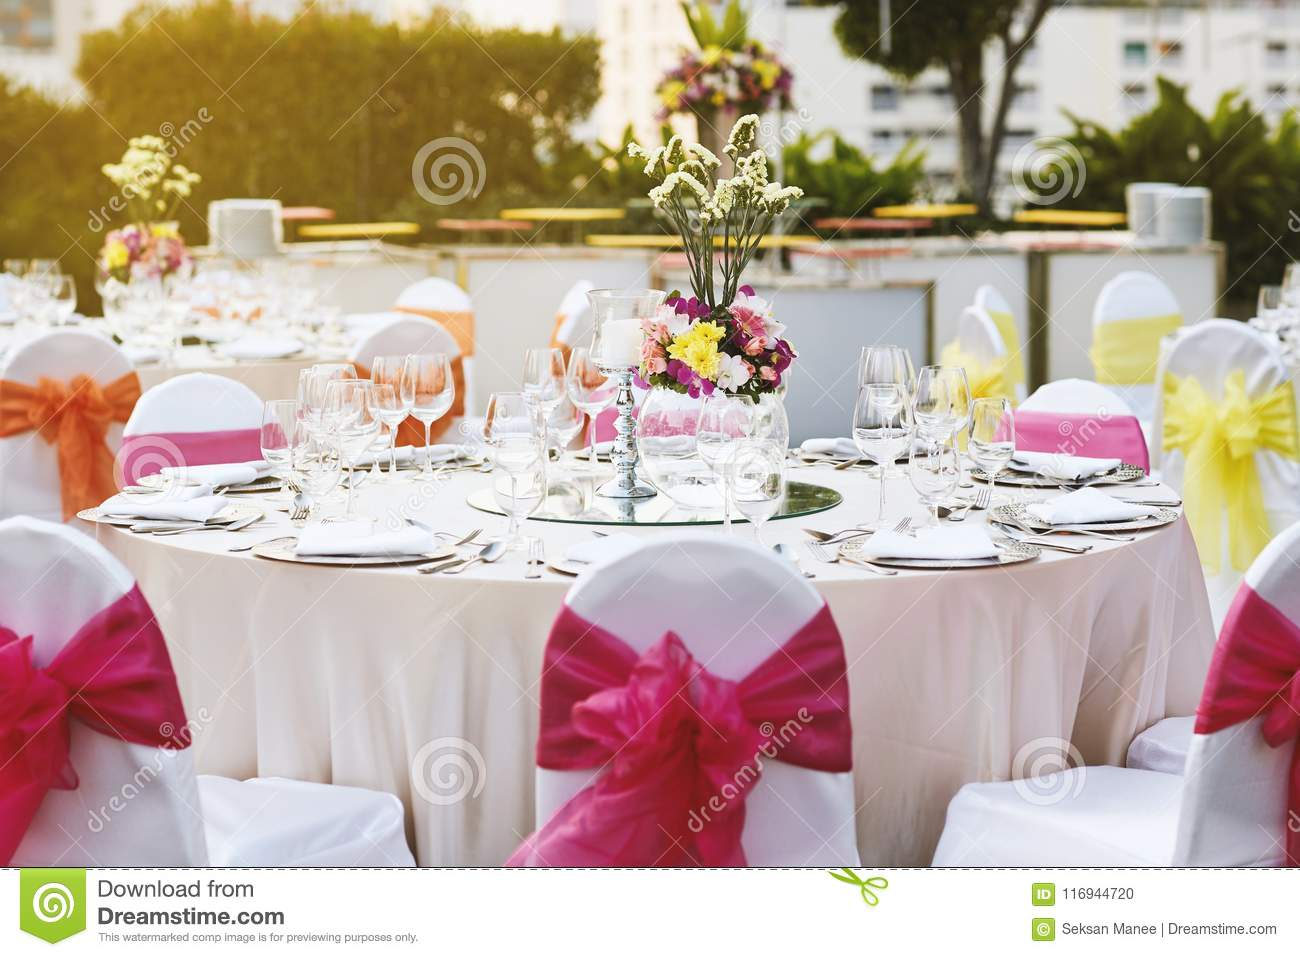 Warm Sunset Light With Wedding Reception Dinner Table Setting With Empty  Glasses Of Water, Wine And Dinnerwear With Flower Decoration, And White  Fabric ...